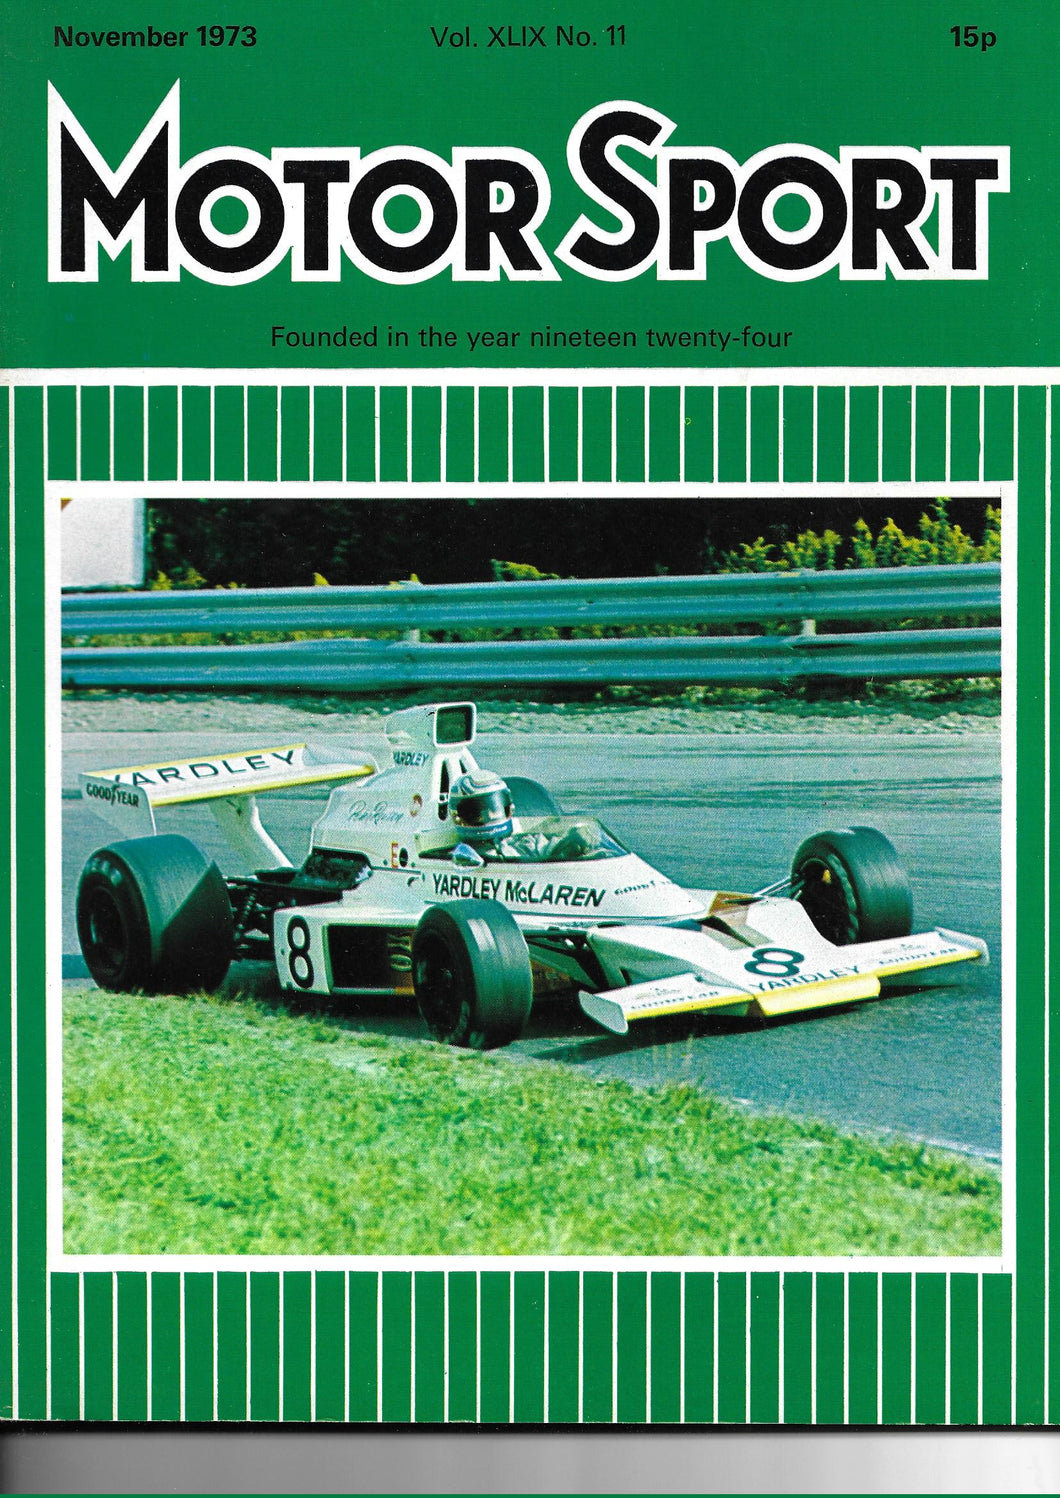 Motor Sport Magazine Vol XLIX No 11 November 1973